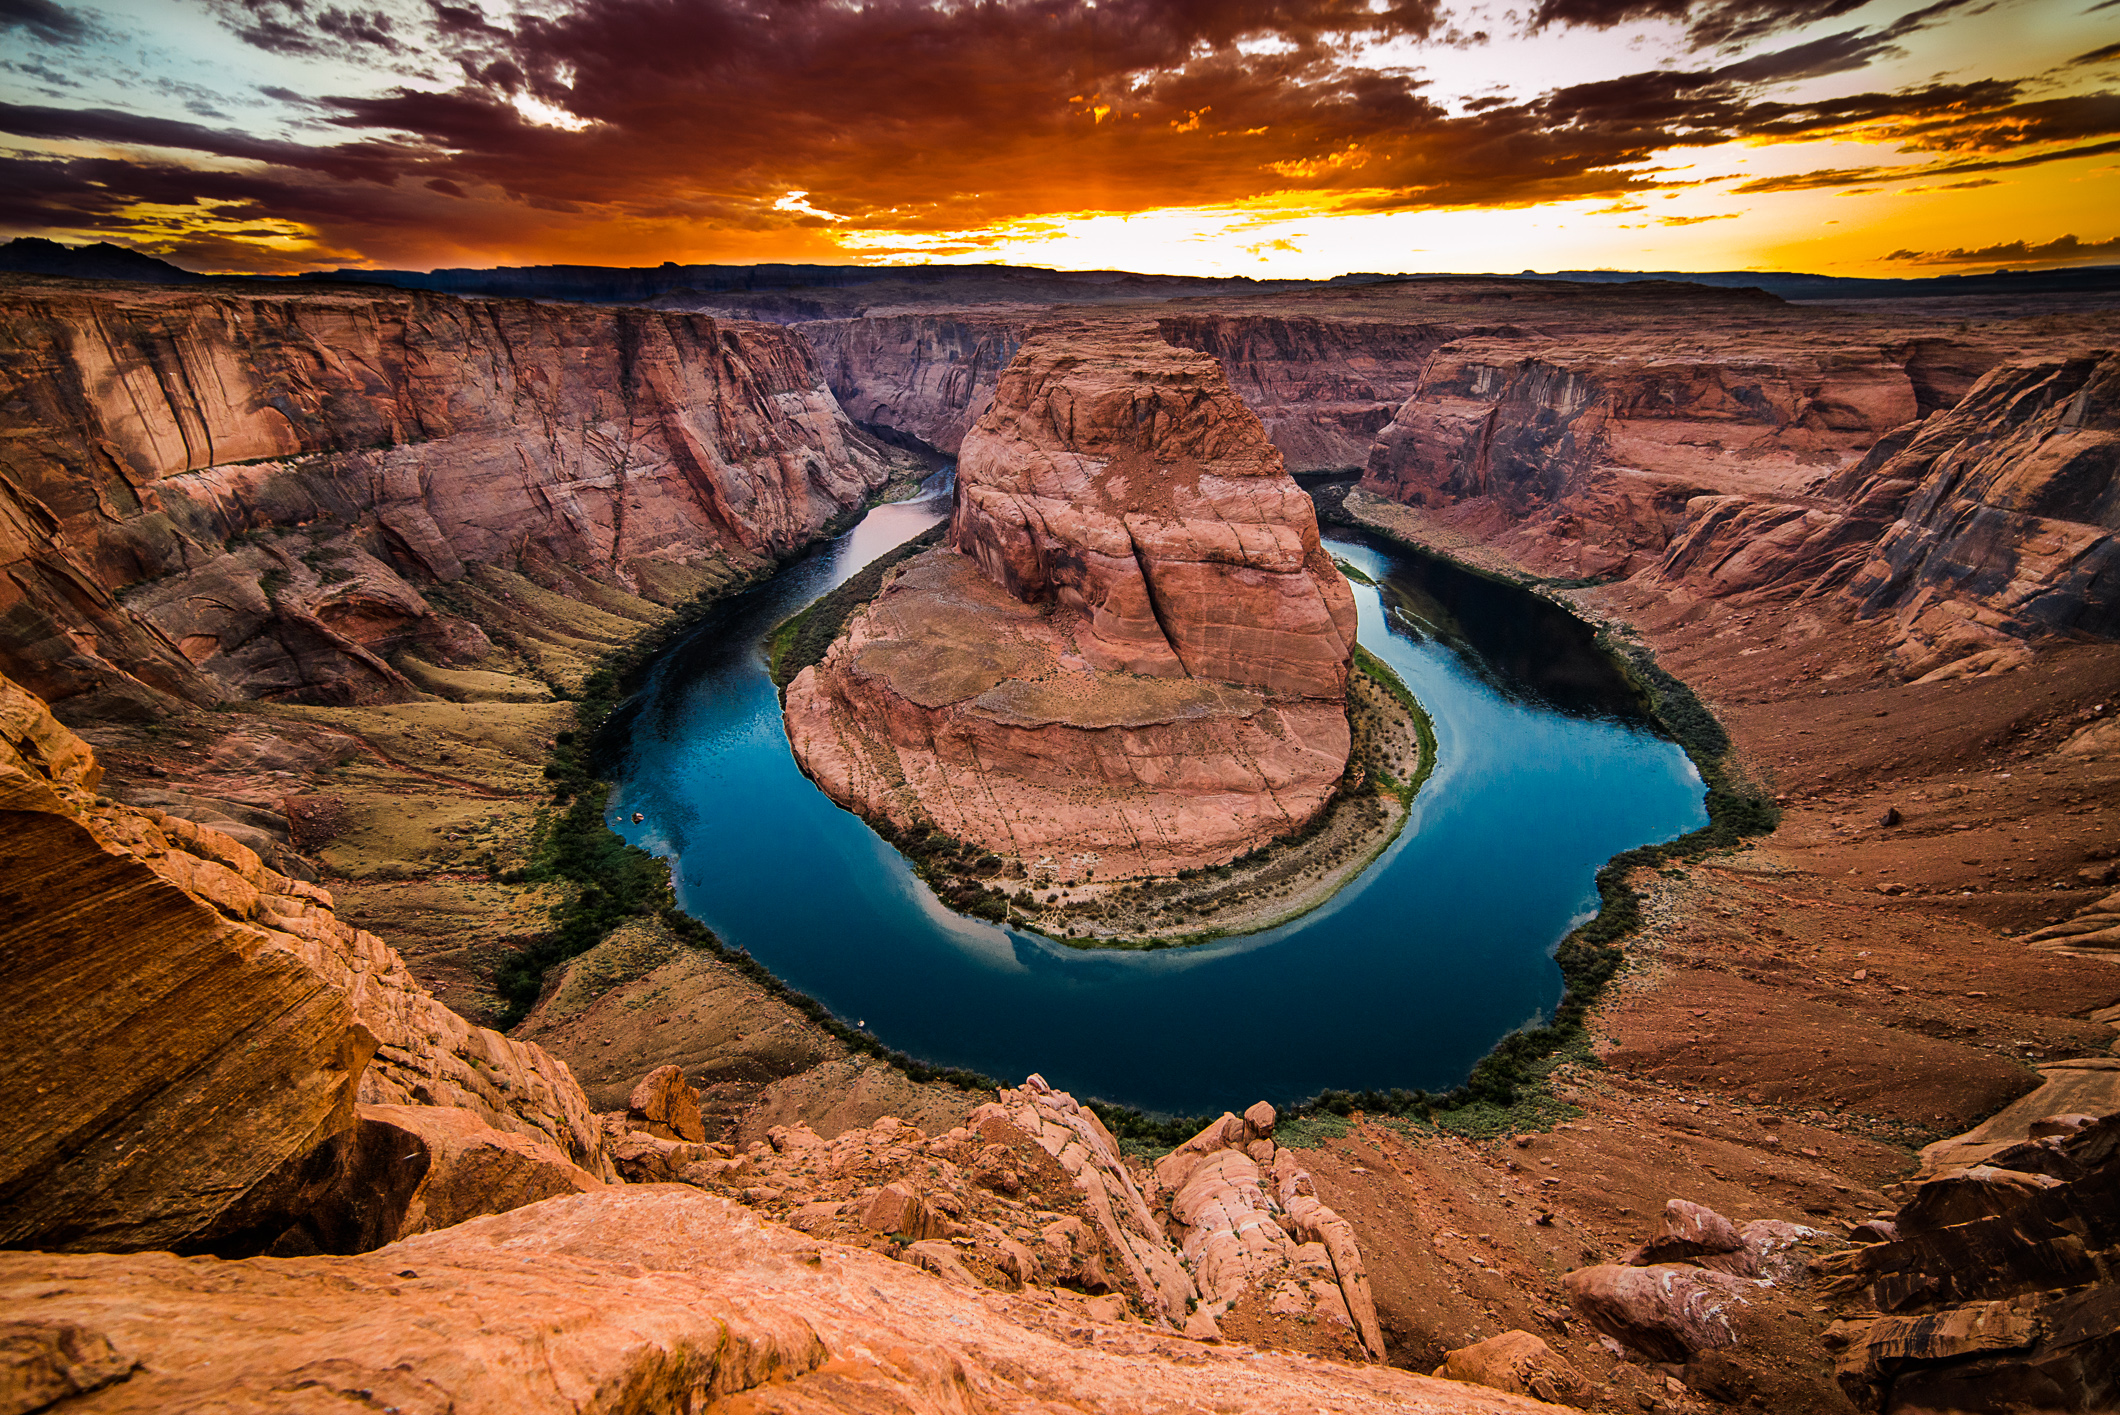 Weathering and erosion by the Colorado River carved this dramatic canyon out of the rock at Horseshoe Bend, in Arizona.